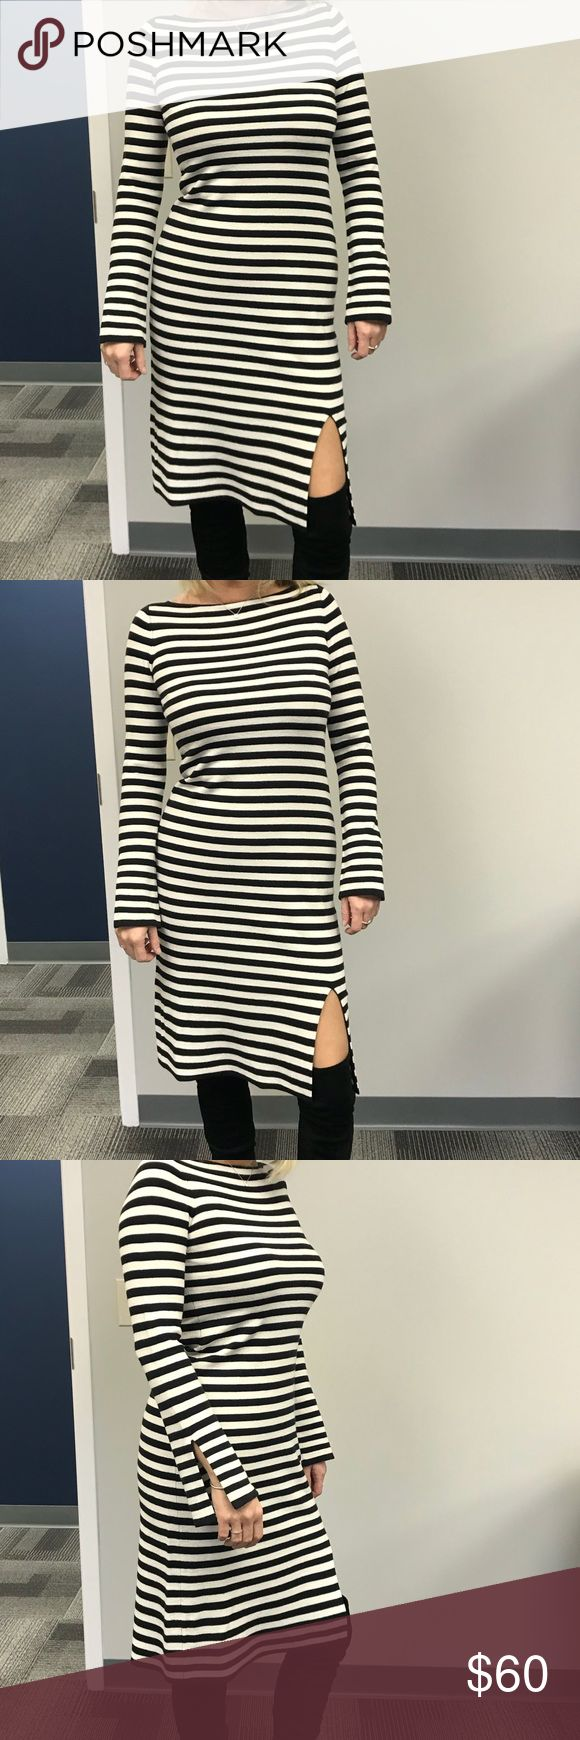 Ann Taylor Sweater Dress! Black and white lightweight sweater dress with a slit in the front and sleeves. I'm 5'9 and 140 pounds and this is an extra small. Ann Taylor Dresses Midi